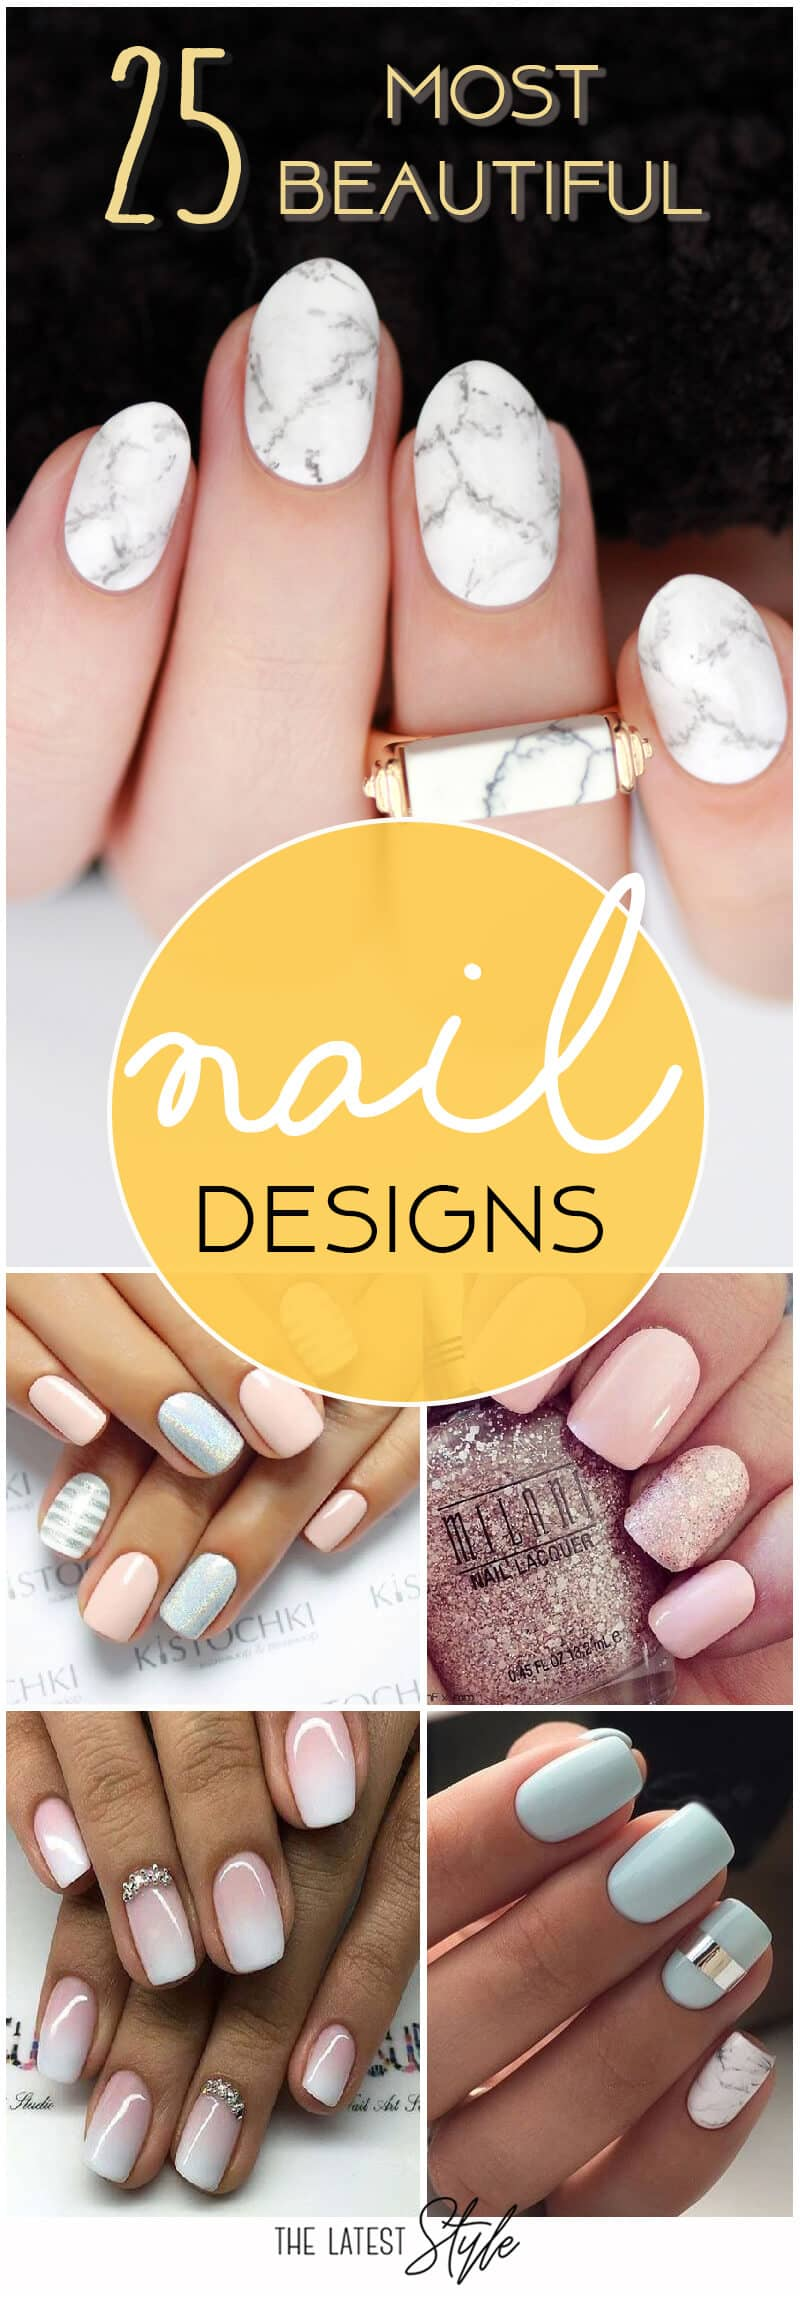 25 of the Most Beautiful Nail Designs to Inspire You